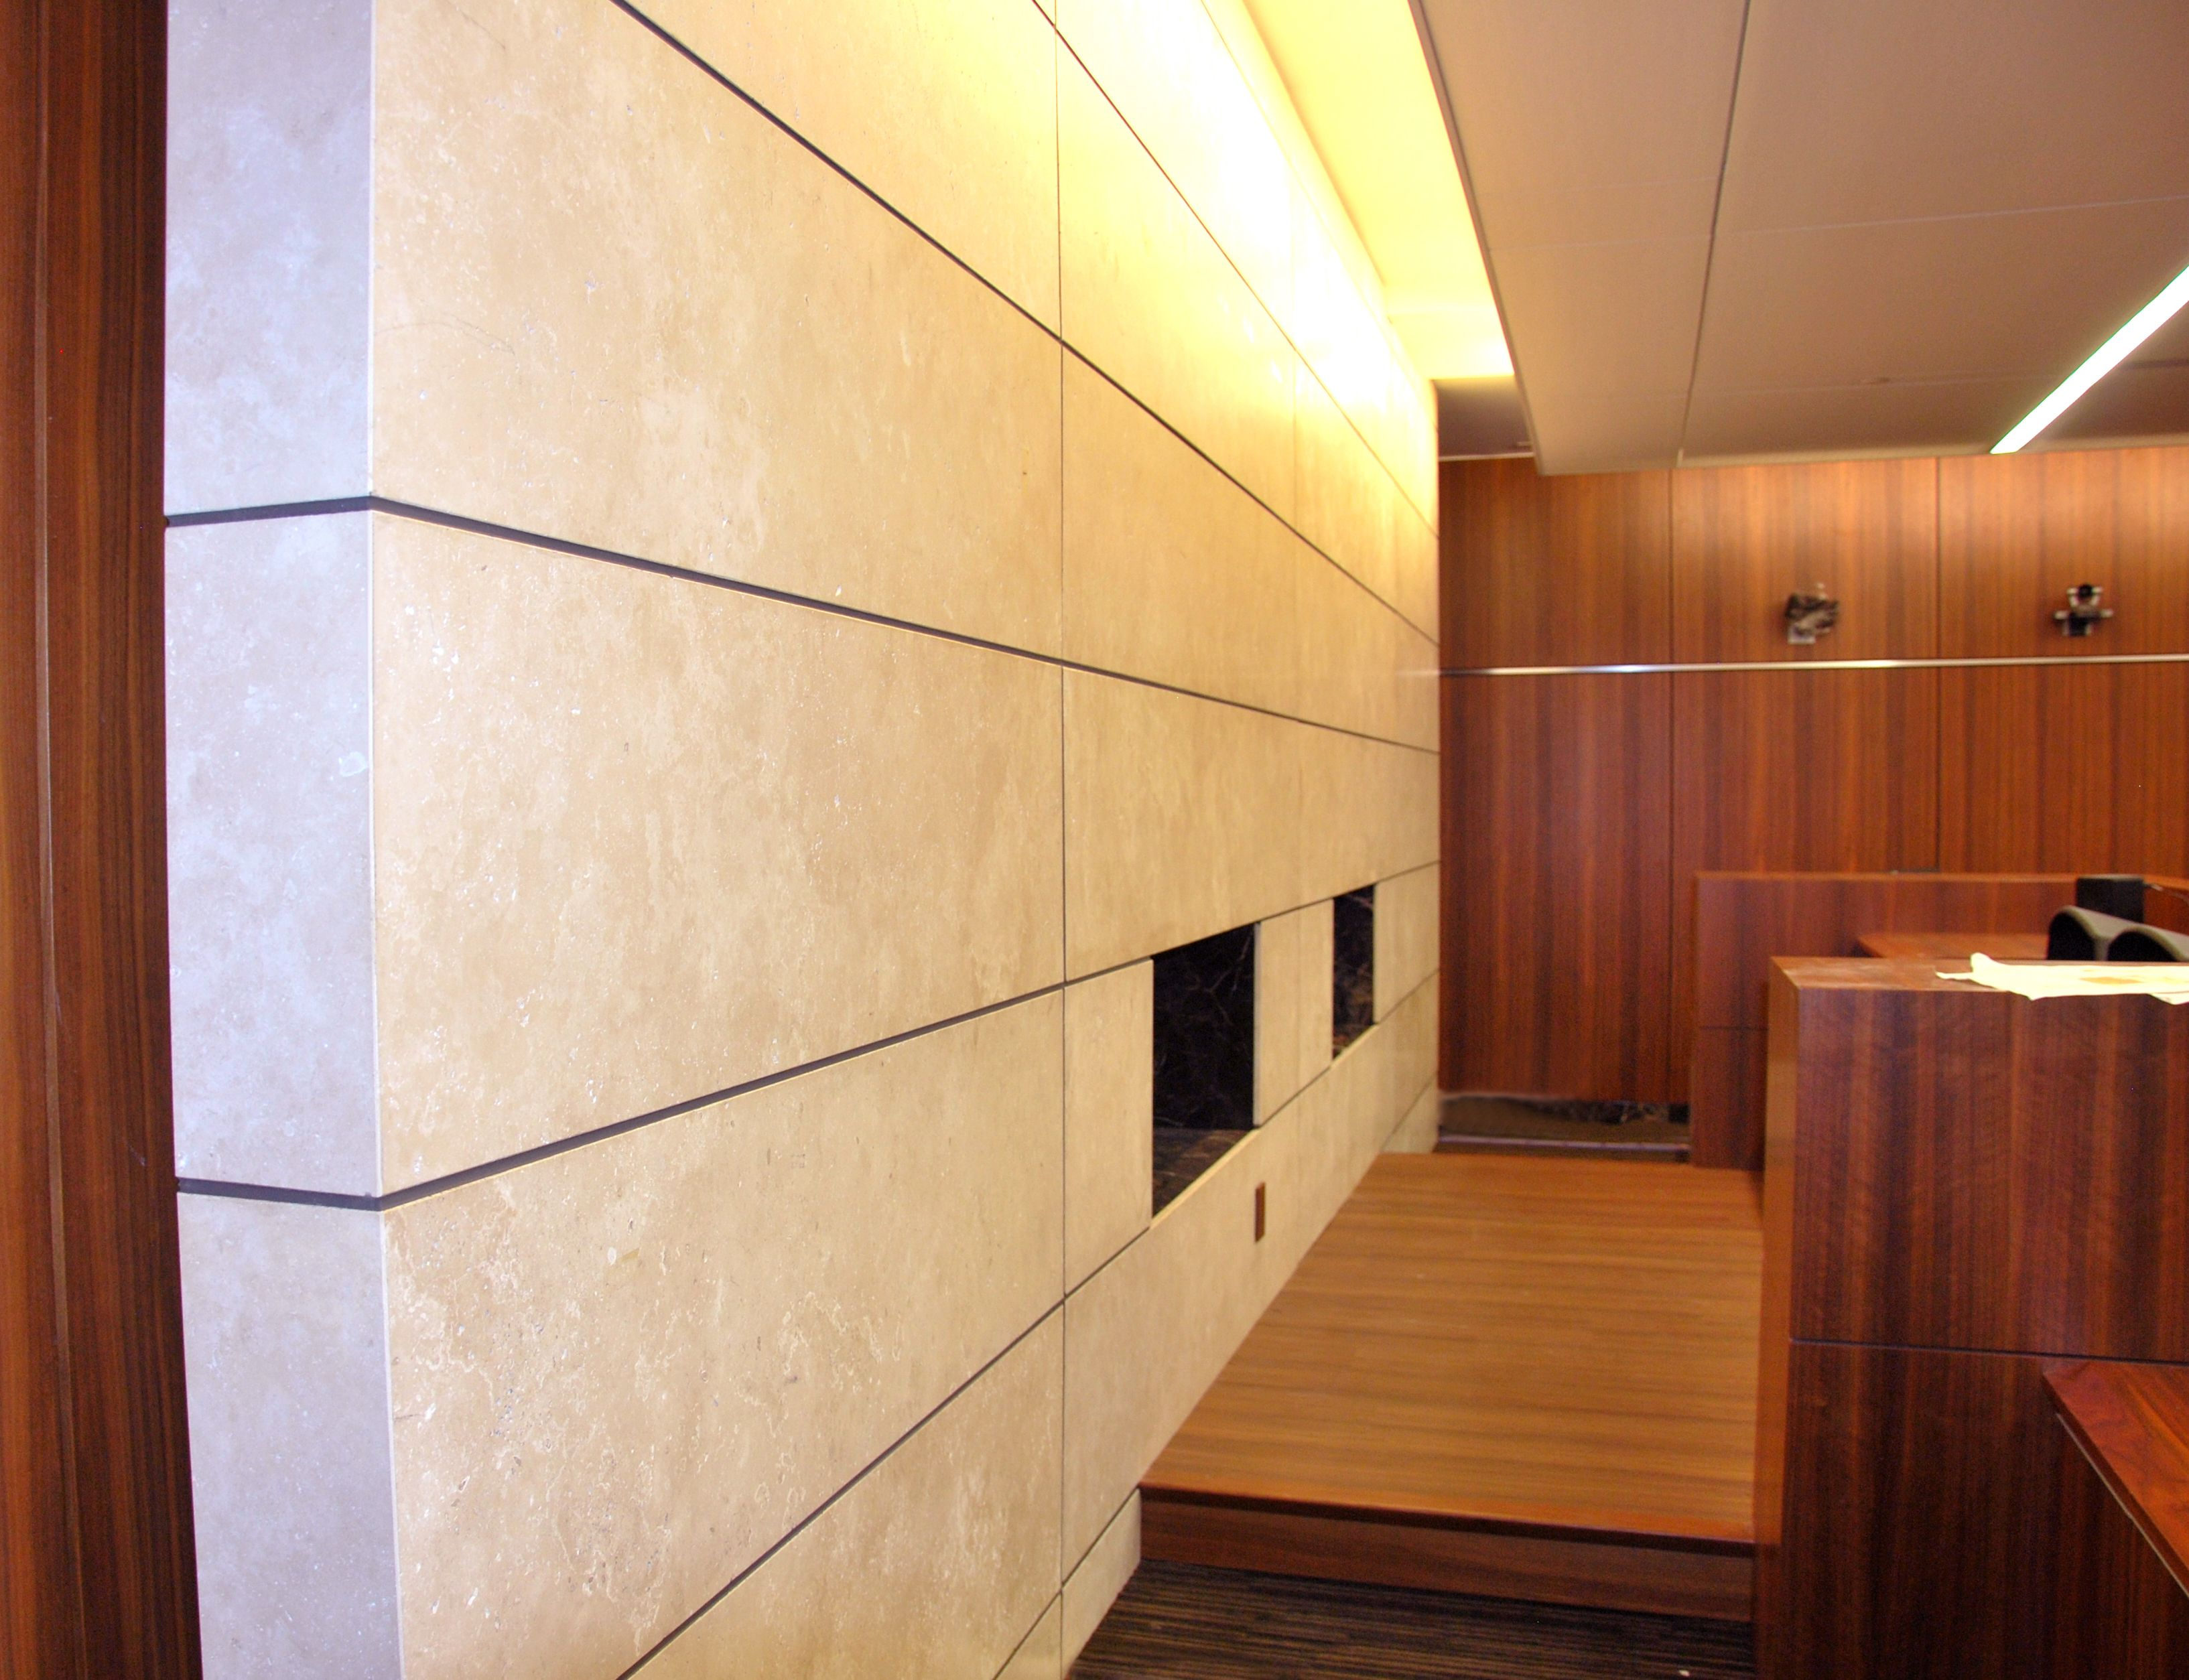 Trimstone lightweight stone systems interior wall